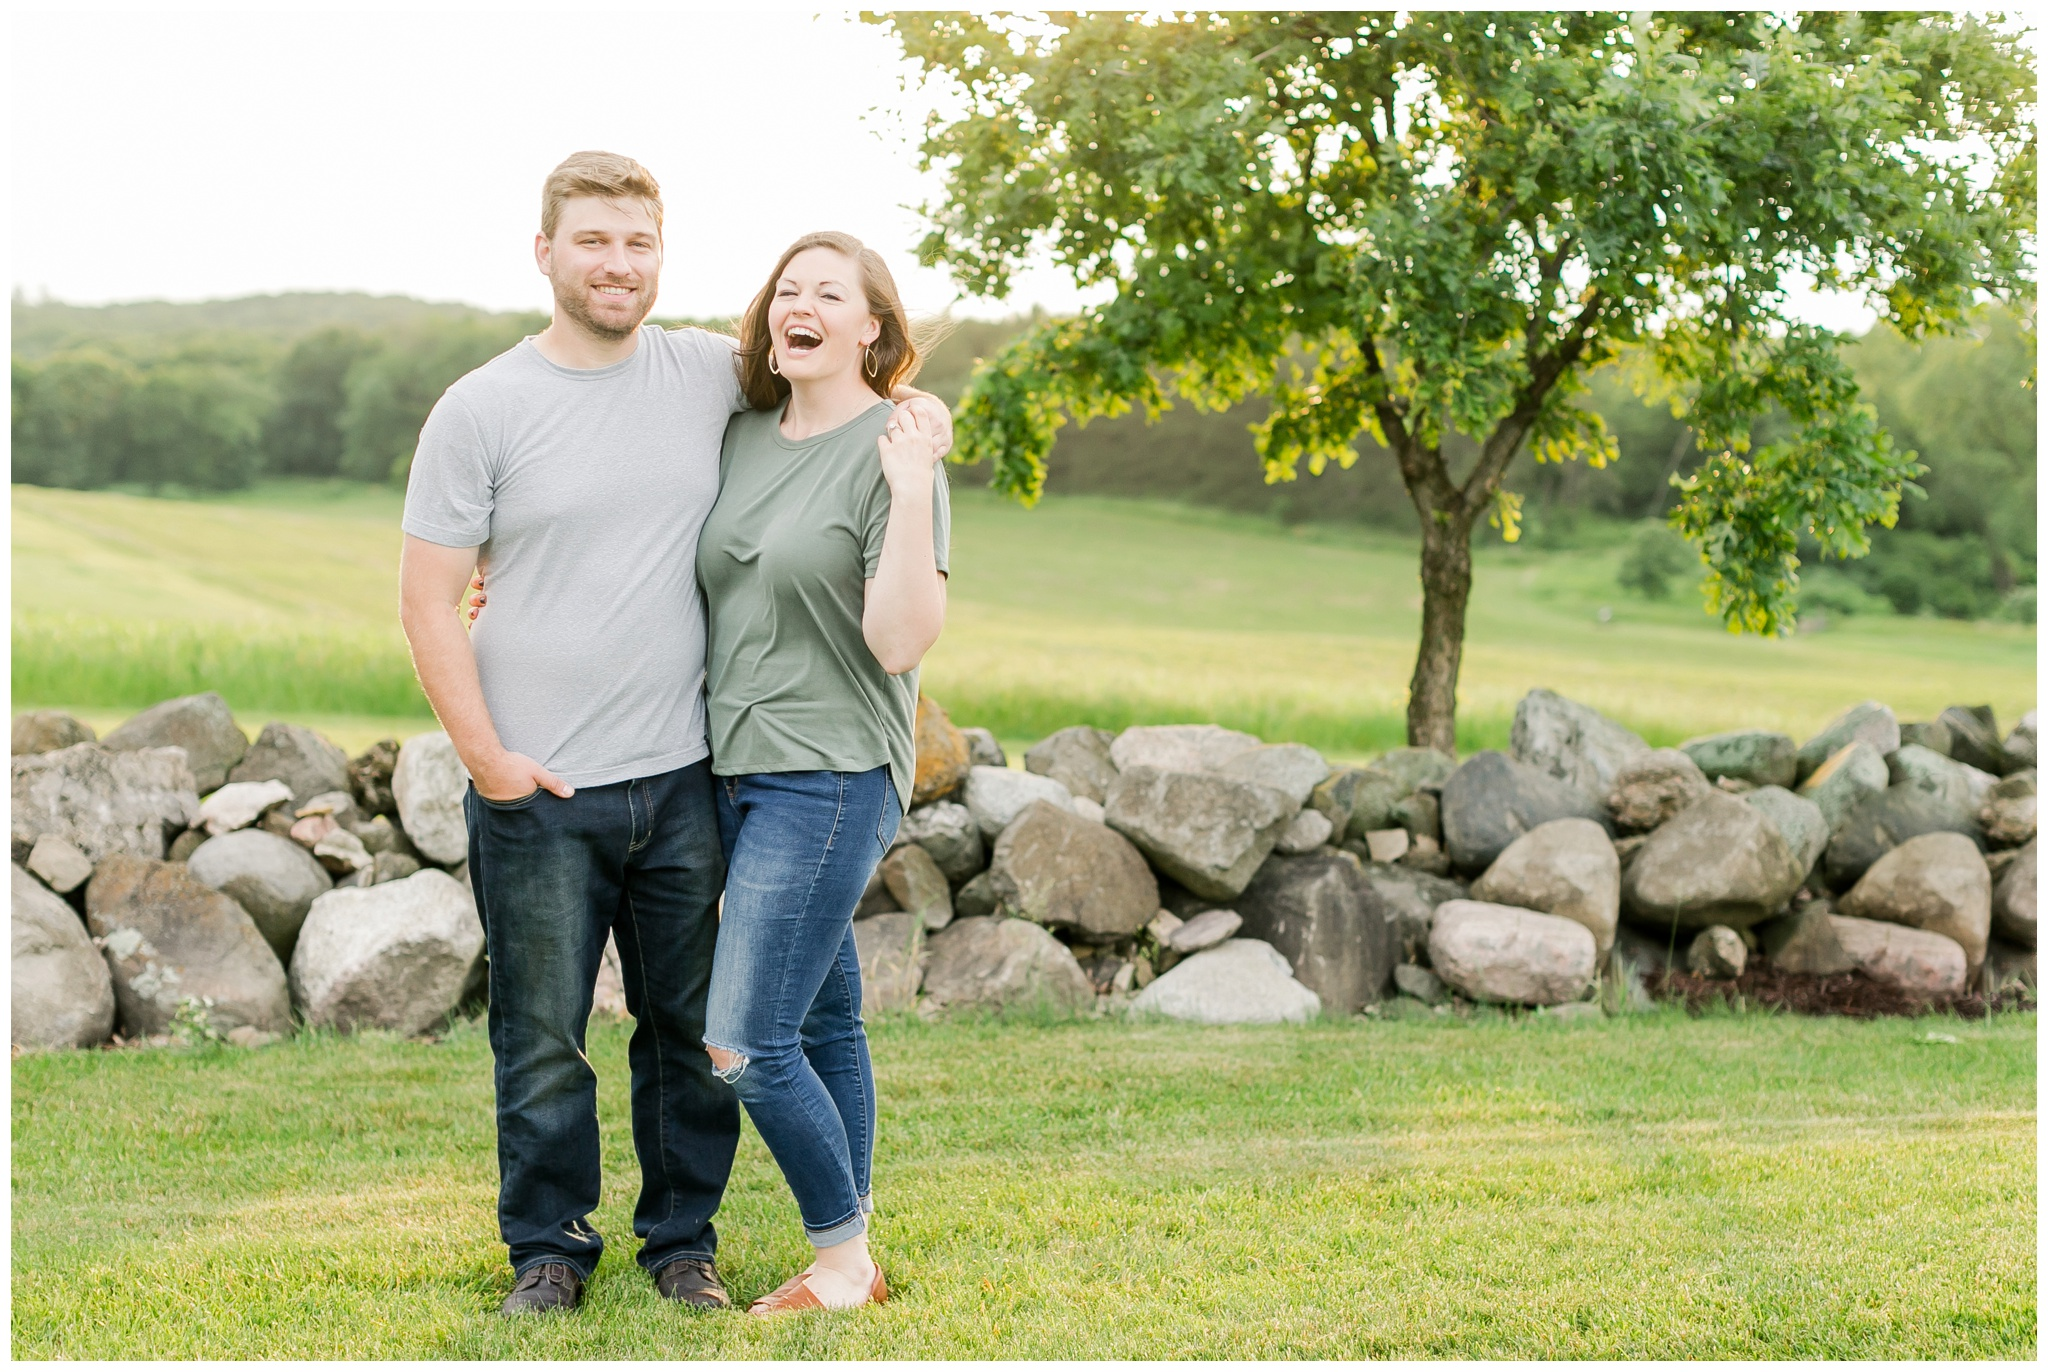 pope_farm_conservancy_engagement_session_madison_wisconsin_engagement_photographers_4151.jpg